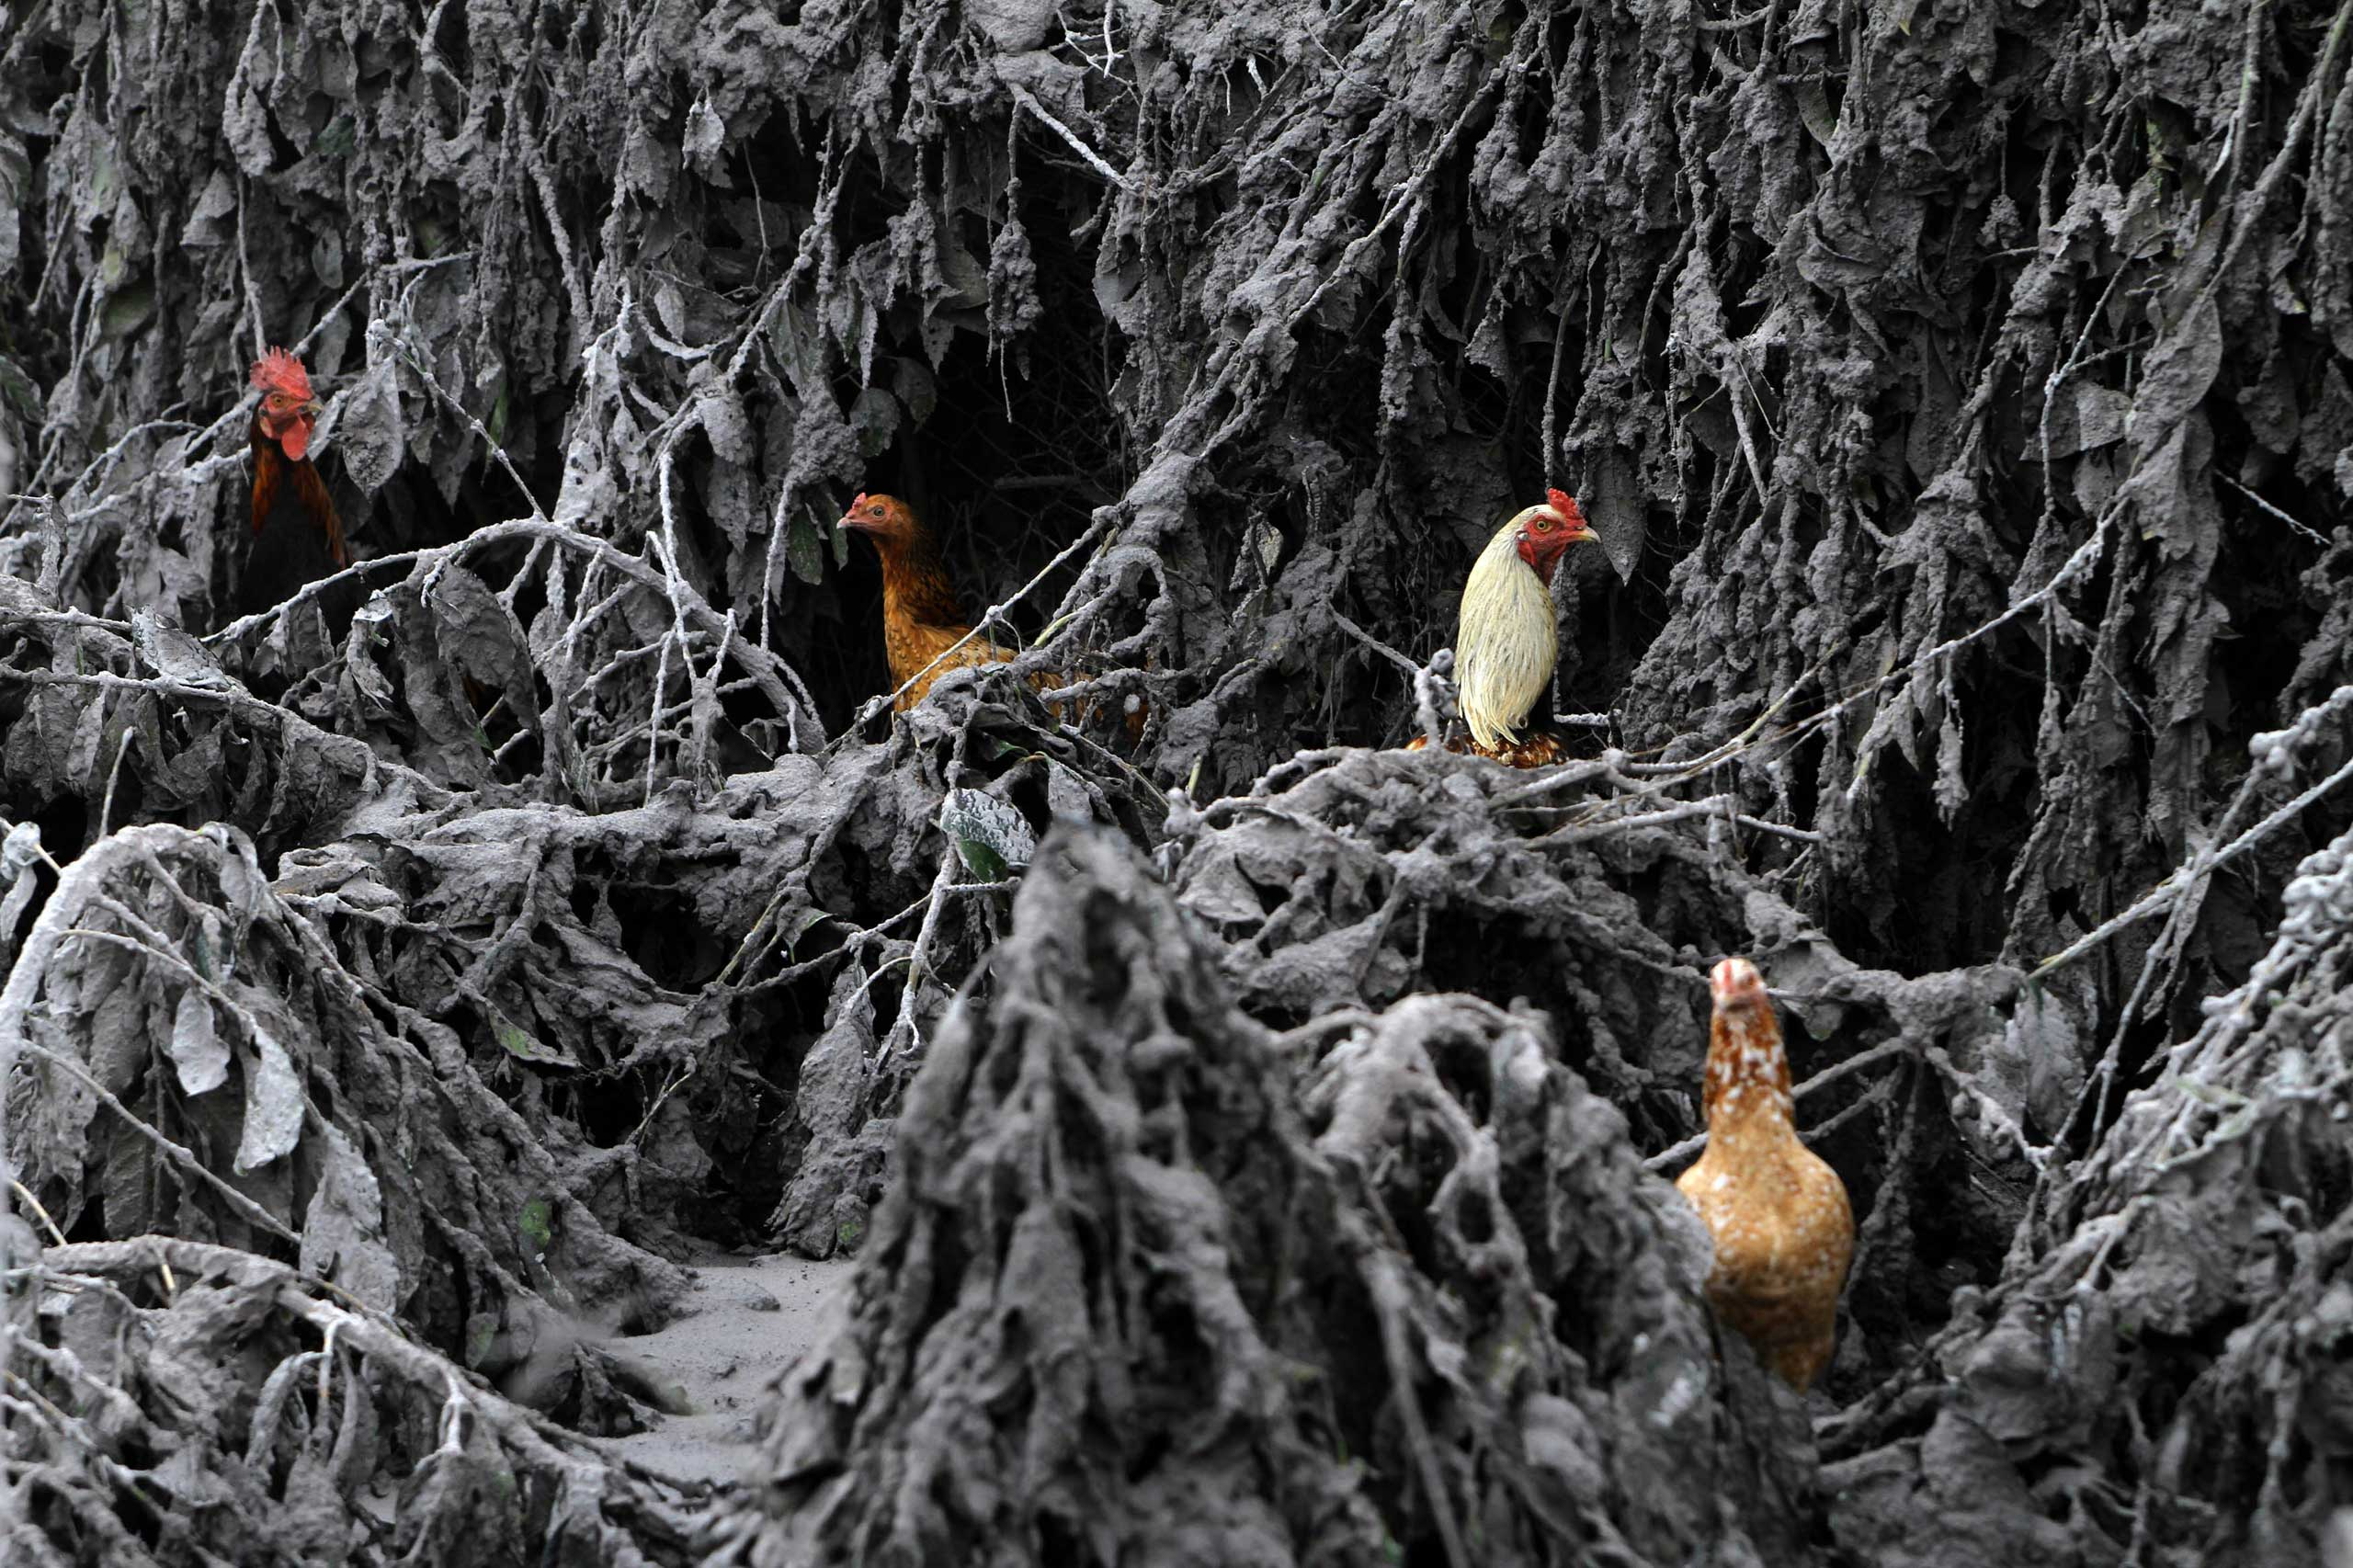 Chickens are seen surrounded by plants covered by ash from Mount Sinabung near Sigarang-Garang village in Karo district, Indonesia's North Sumatra province, Jan. 12, 2014.